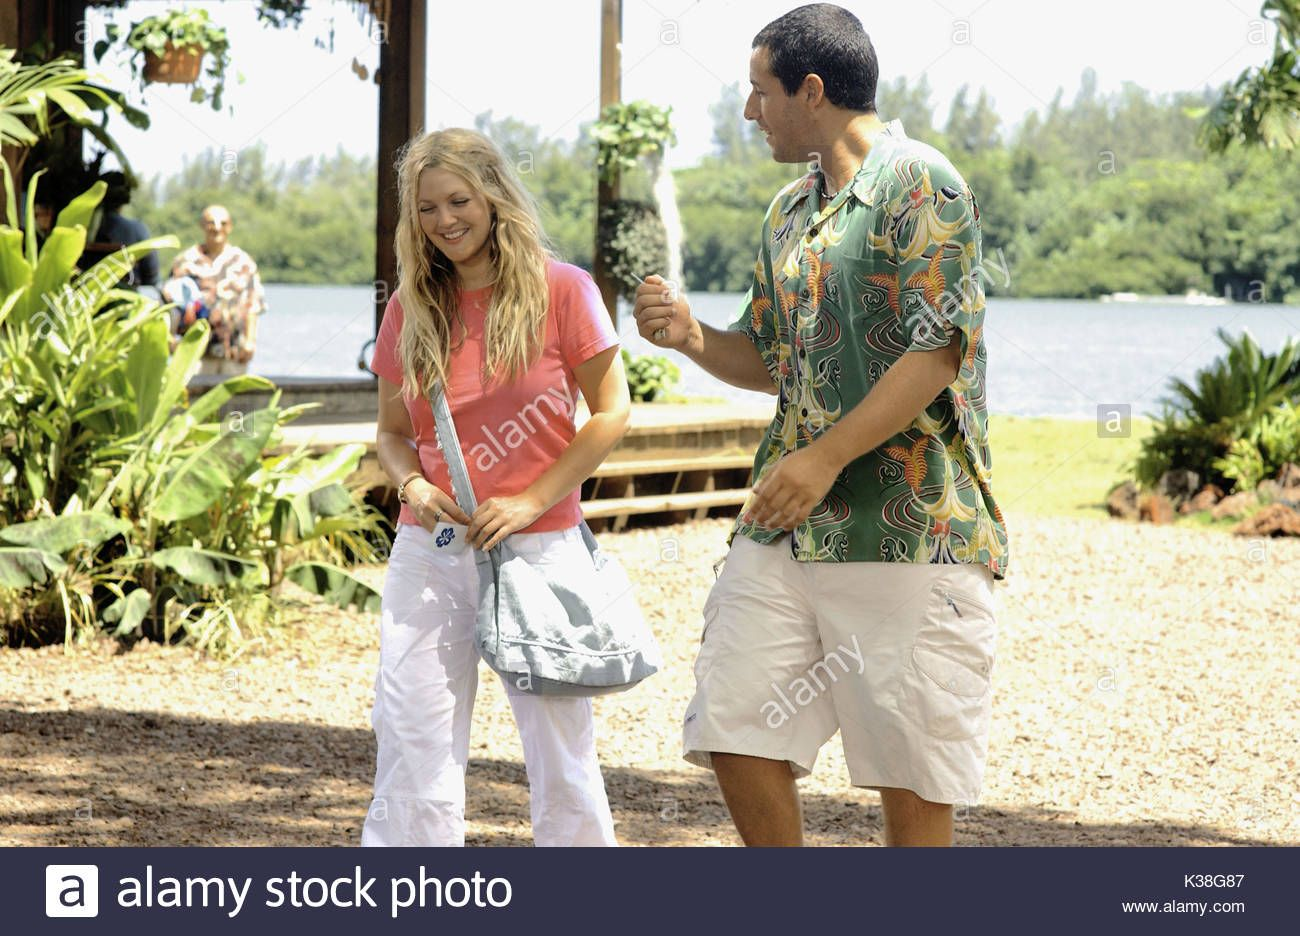 Drew Barrymore in 2020 50 first dates, Adam sandler